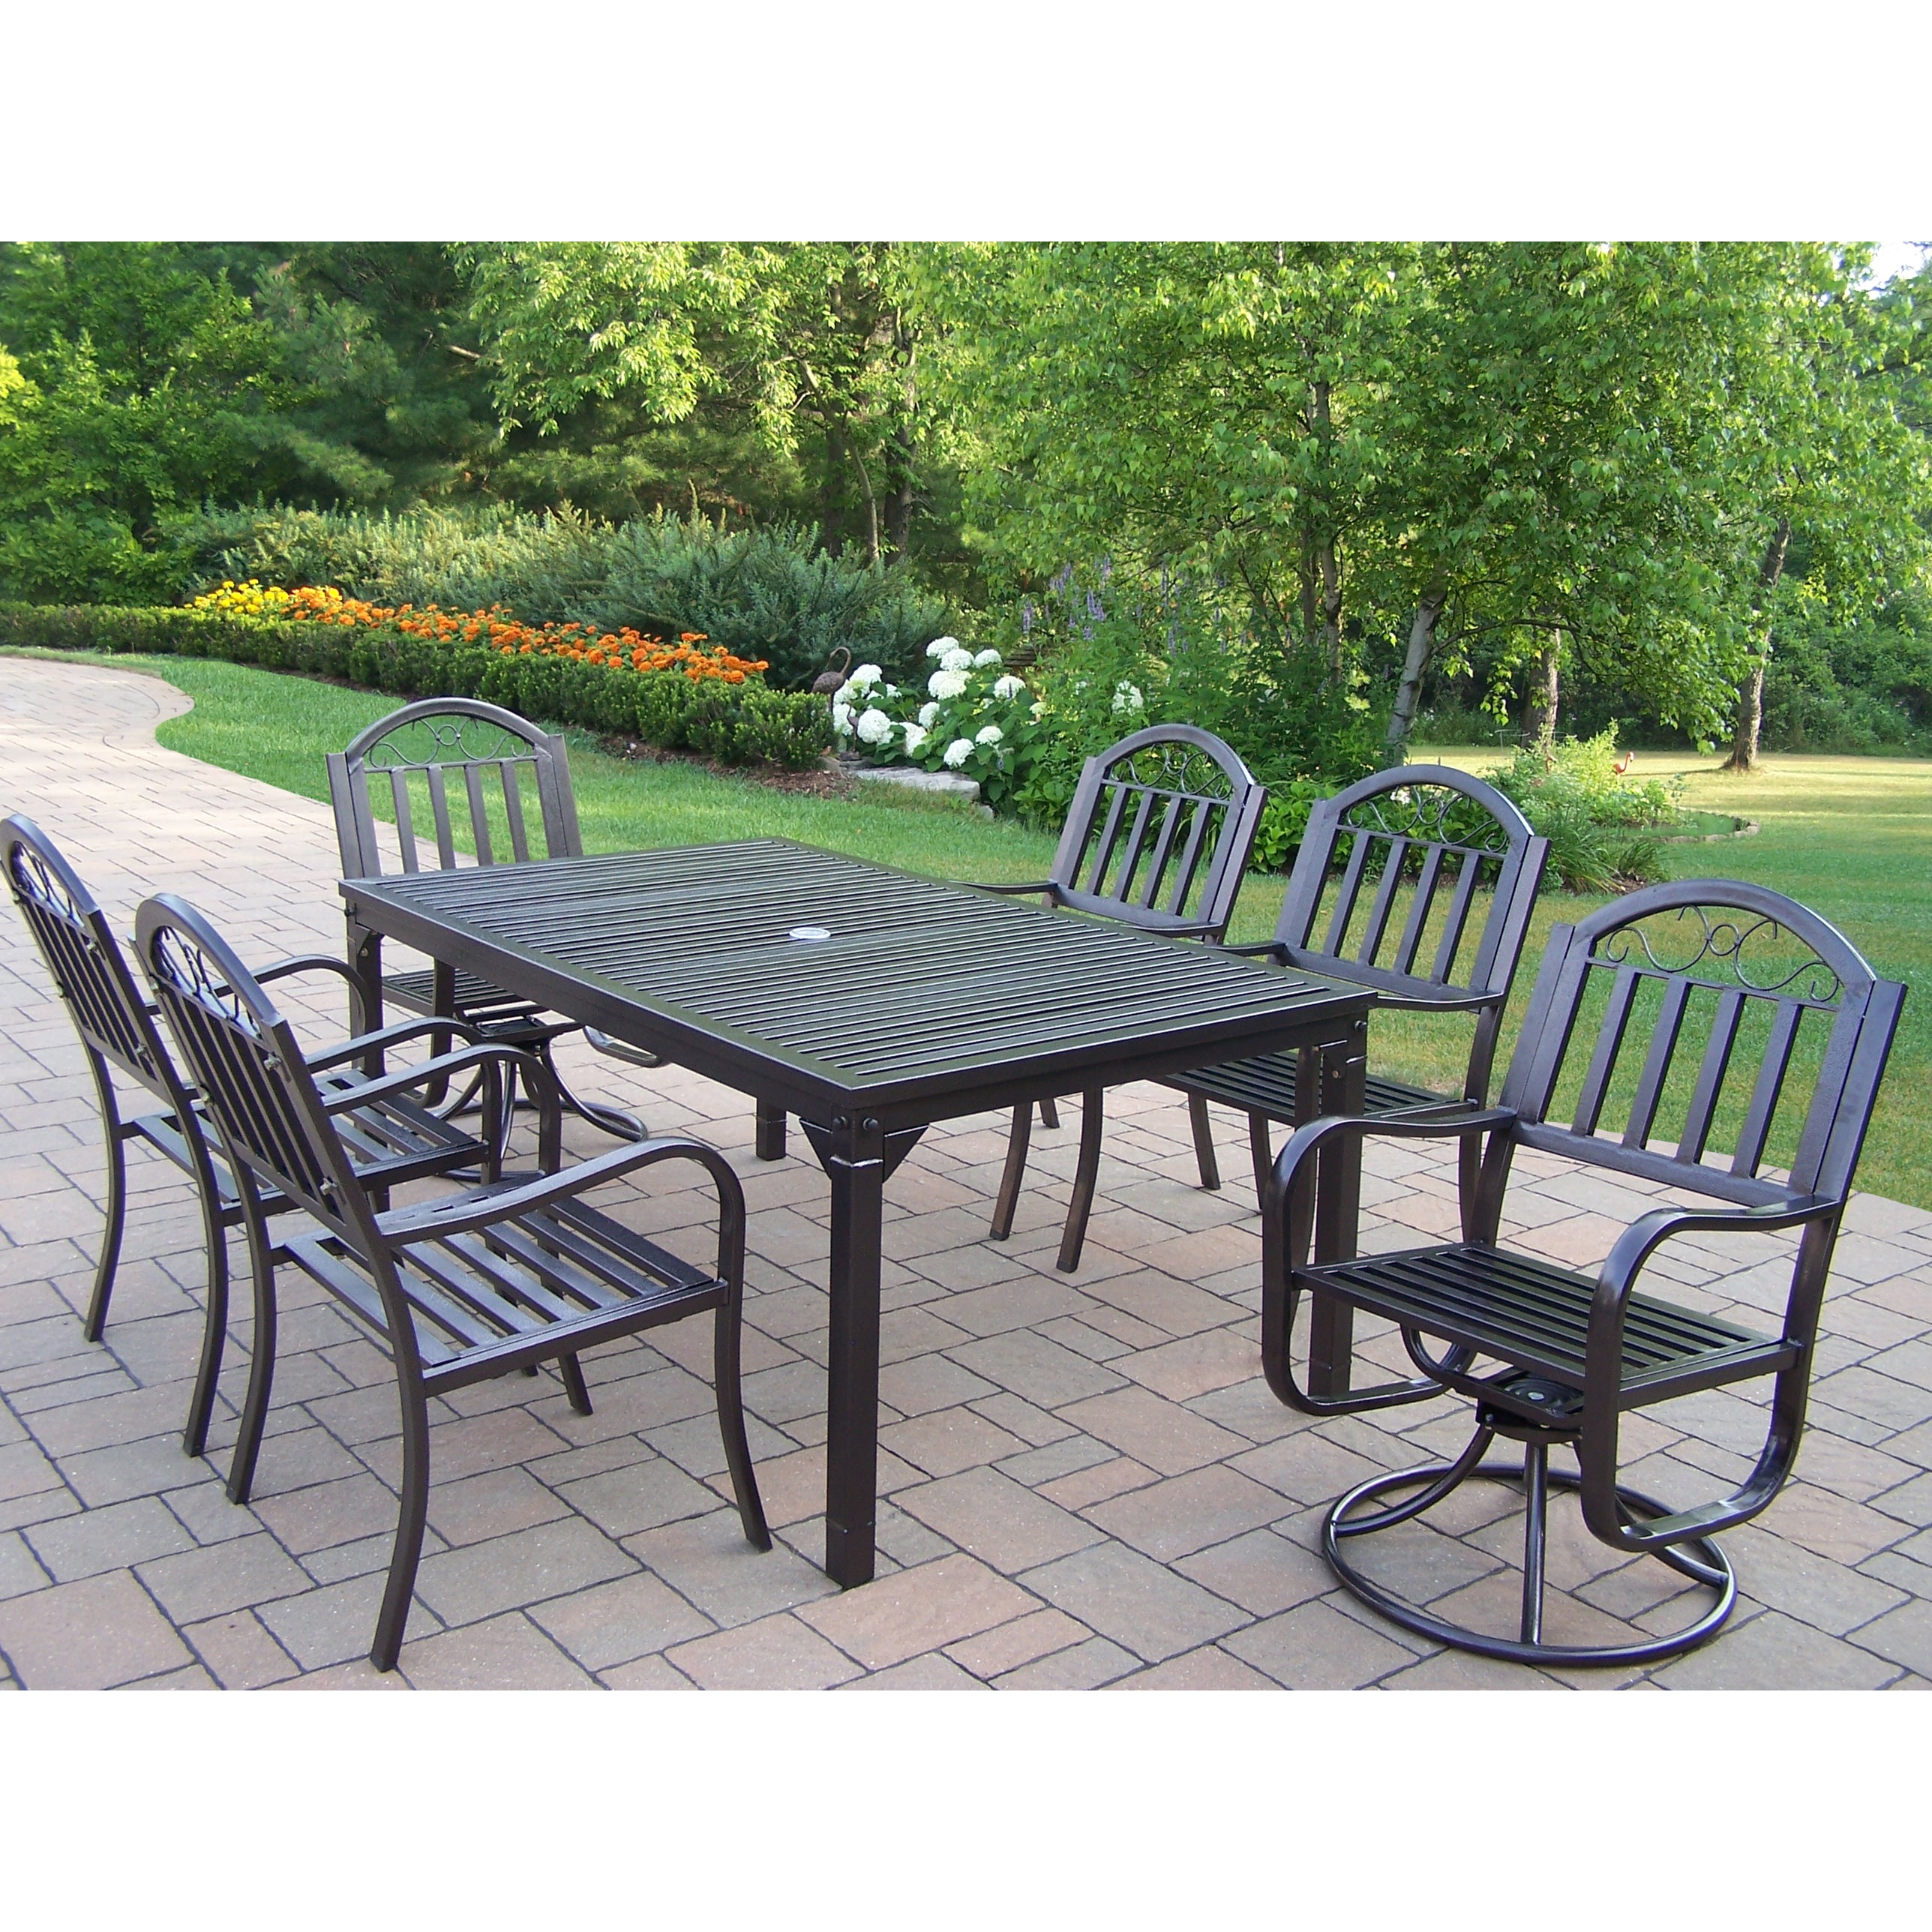 Oakland Living Corporation 7 Pc Dining Set with Rectangle Table, 4 Chairs and 2 Swivel Chairs